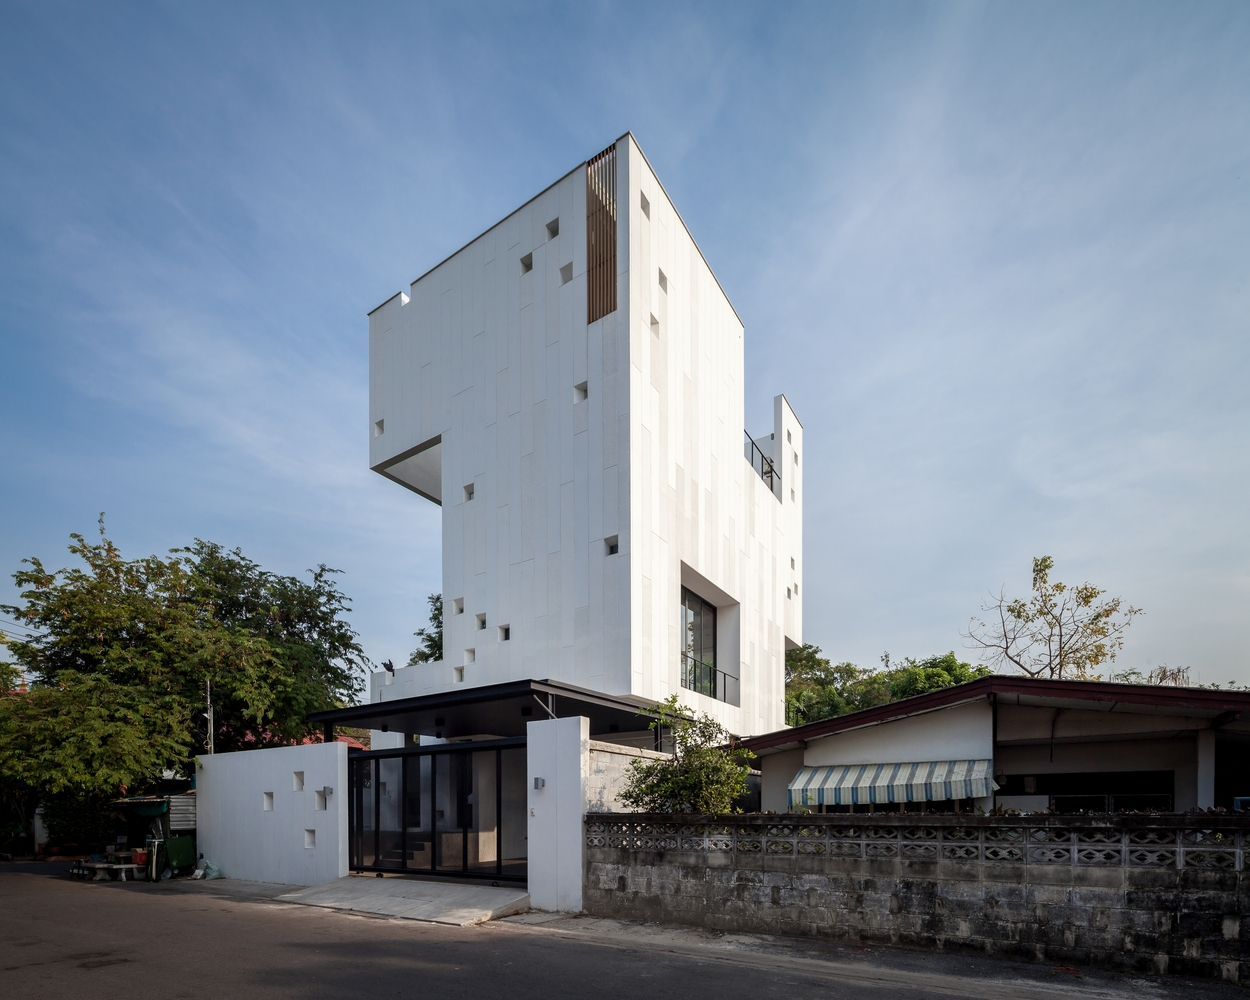 Aperture house by stu d o in bangkok thailand for Bangkok architecture